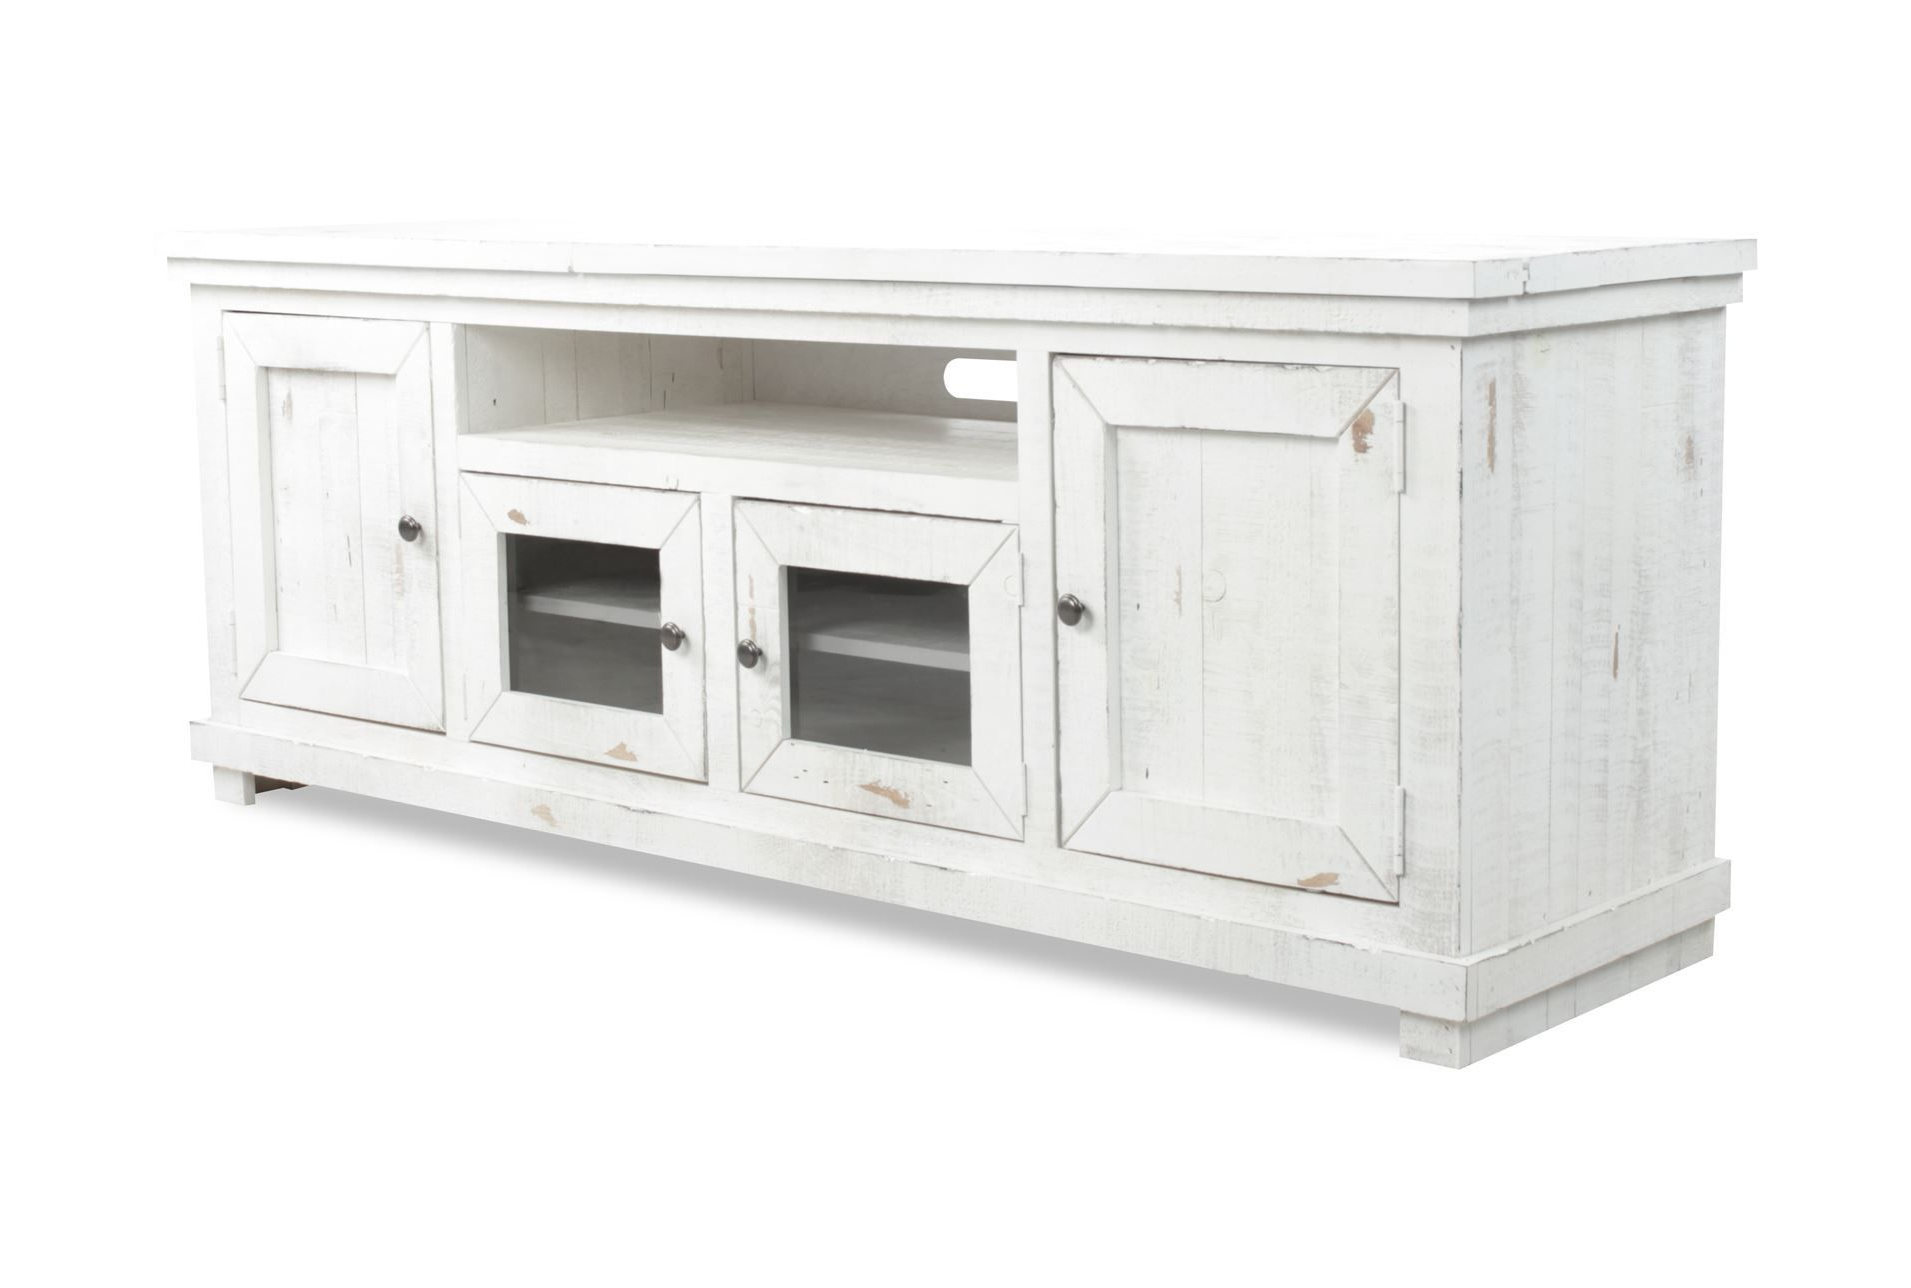 Sinclair White 74 Inch Tv Stand | Home Ideas | Pinterest | Living For Sinclair White 64 Inch Tv Stands (View 11 of 20)